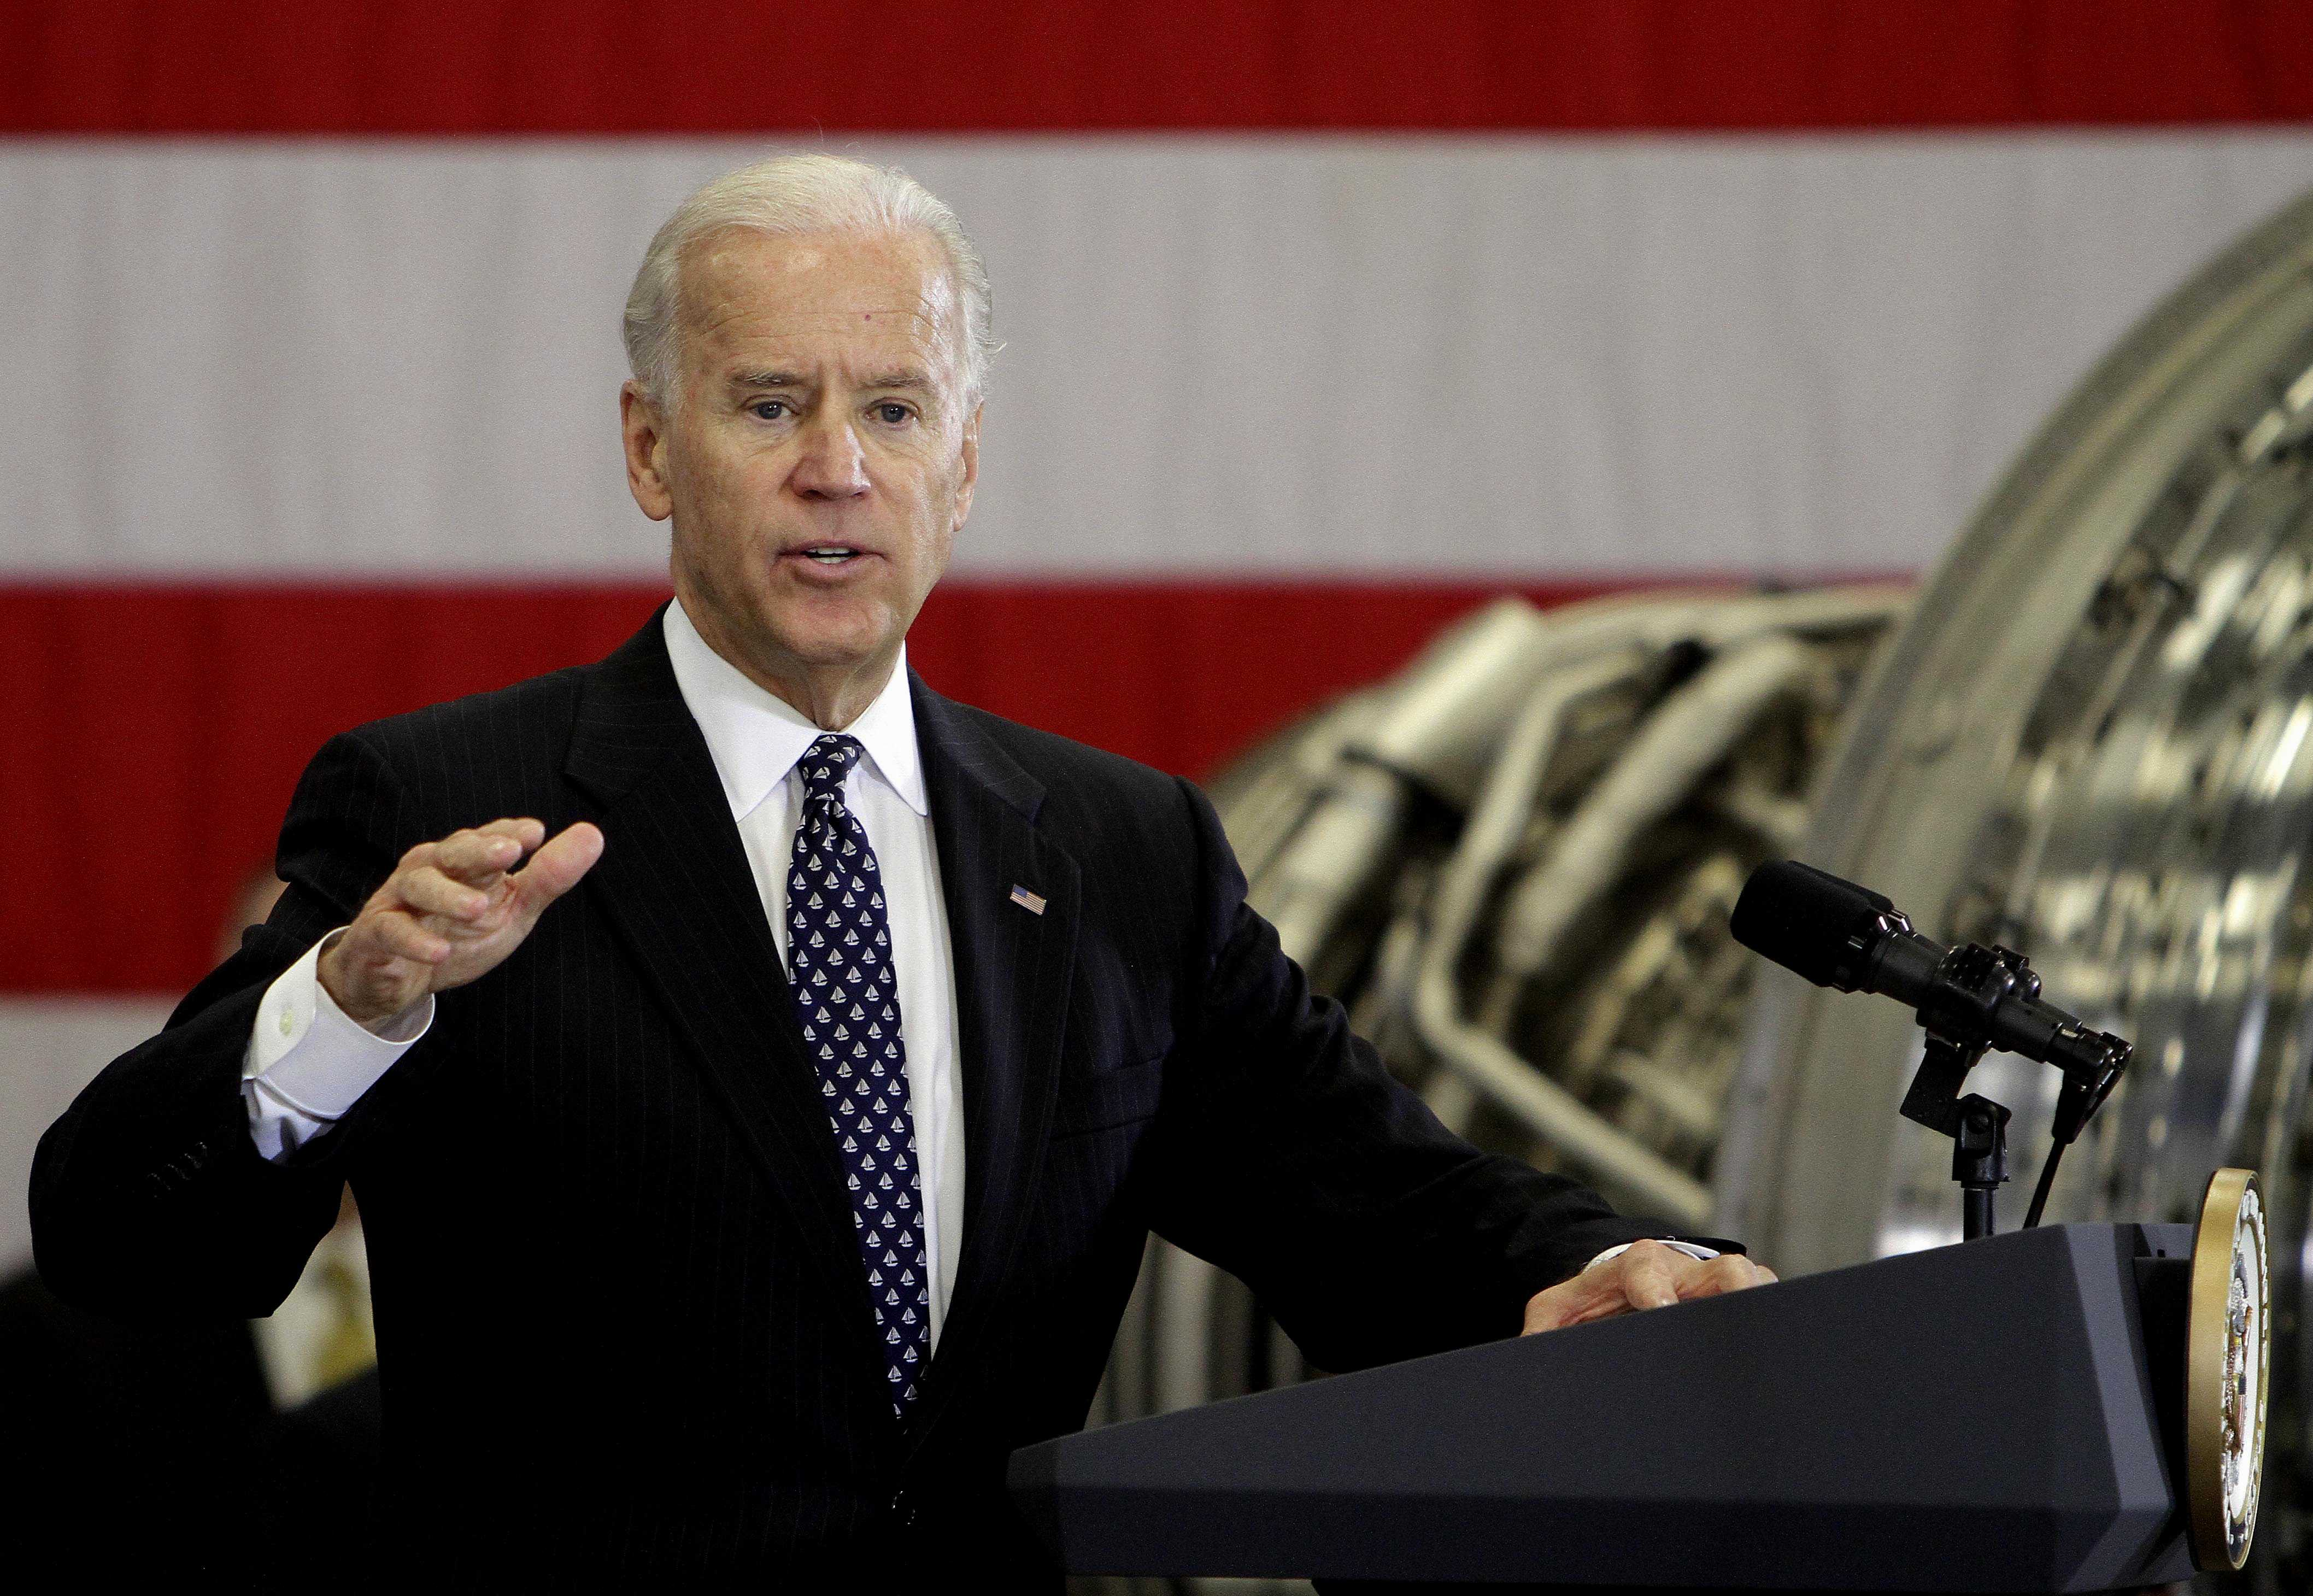 The vice president shook up the scientific world Tuesday. At a campaign stop in Virginia touting the administration's energy policy, Vice President Joseph R. Biden blamed earthquakes on the extraction of natural gas by fracking.